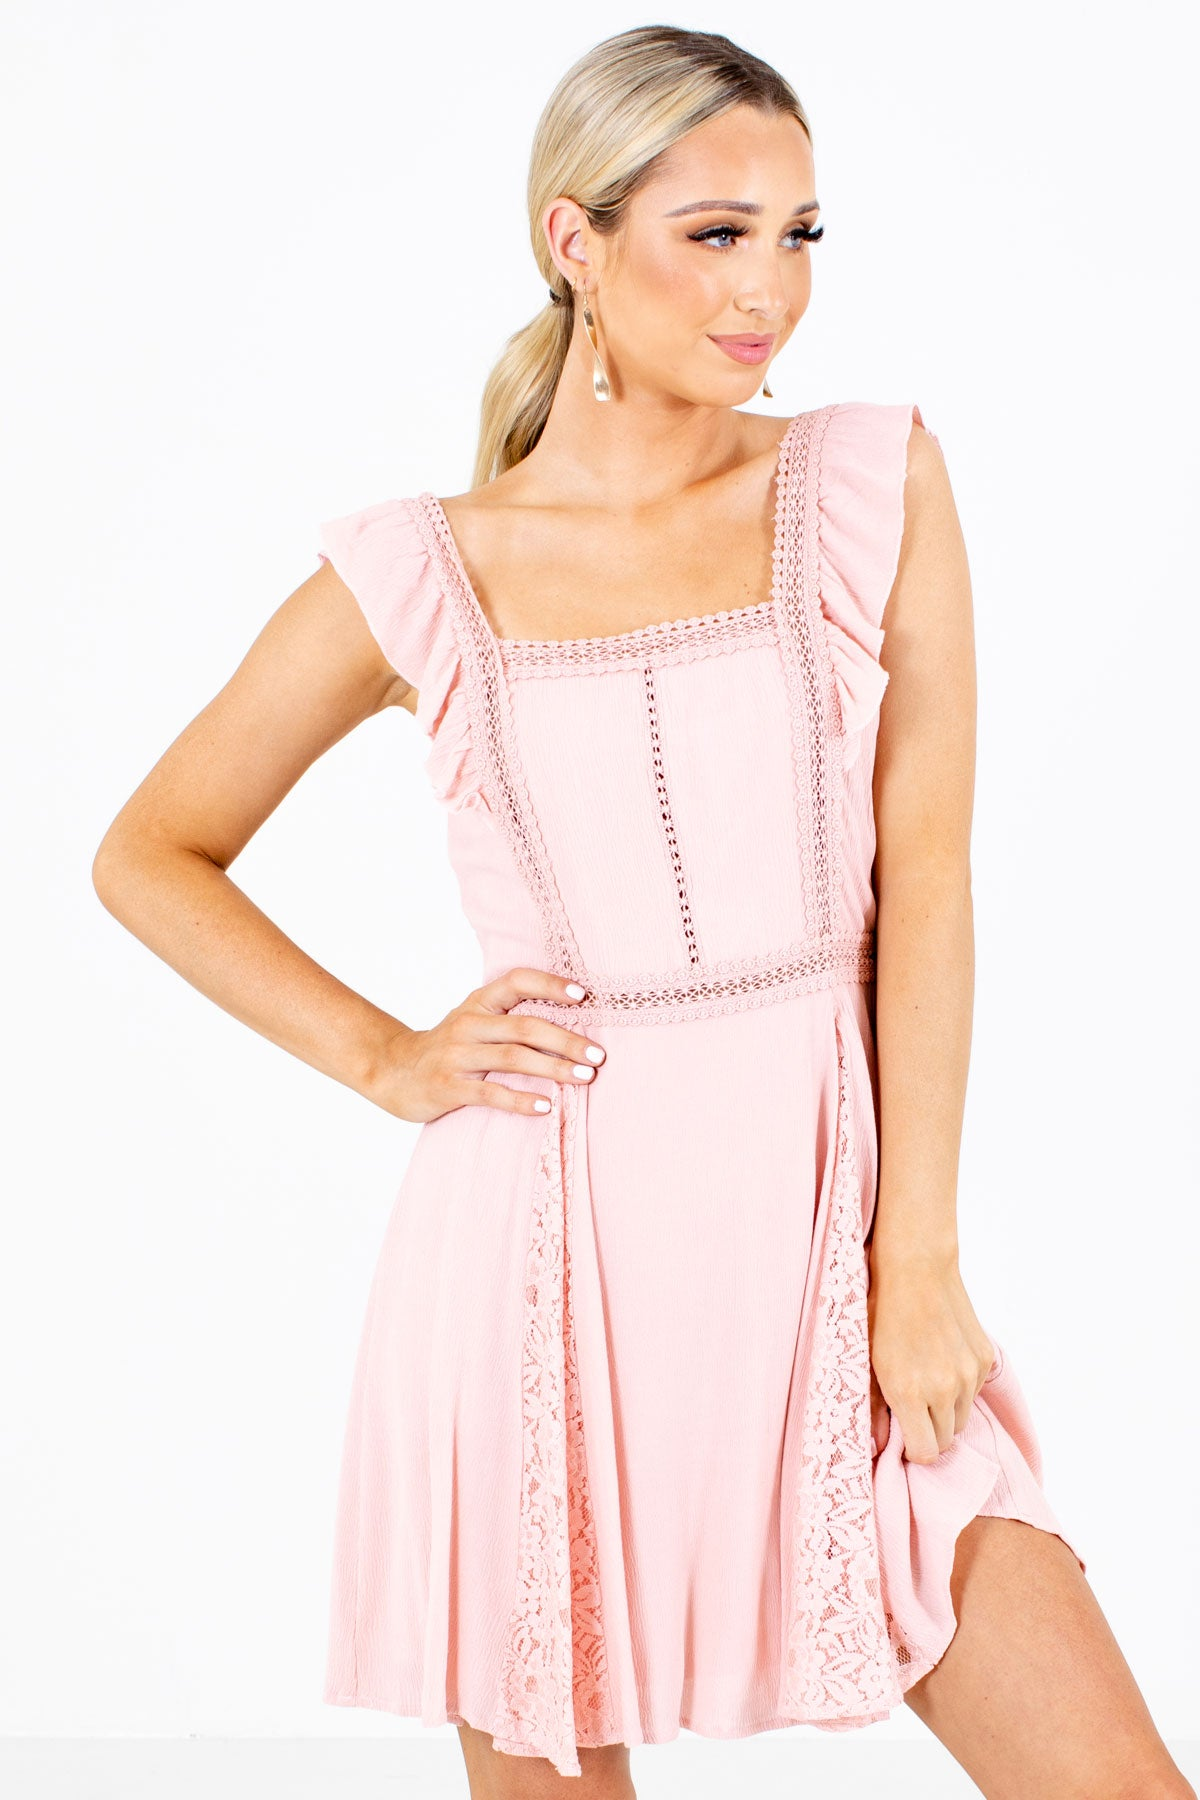 Mini Dress with Lace Trim in Pink for Women